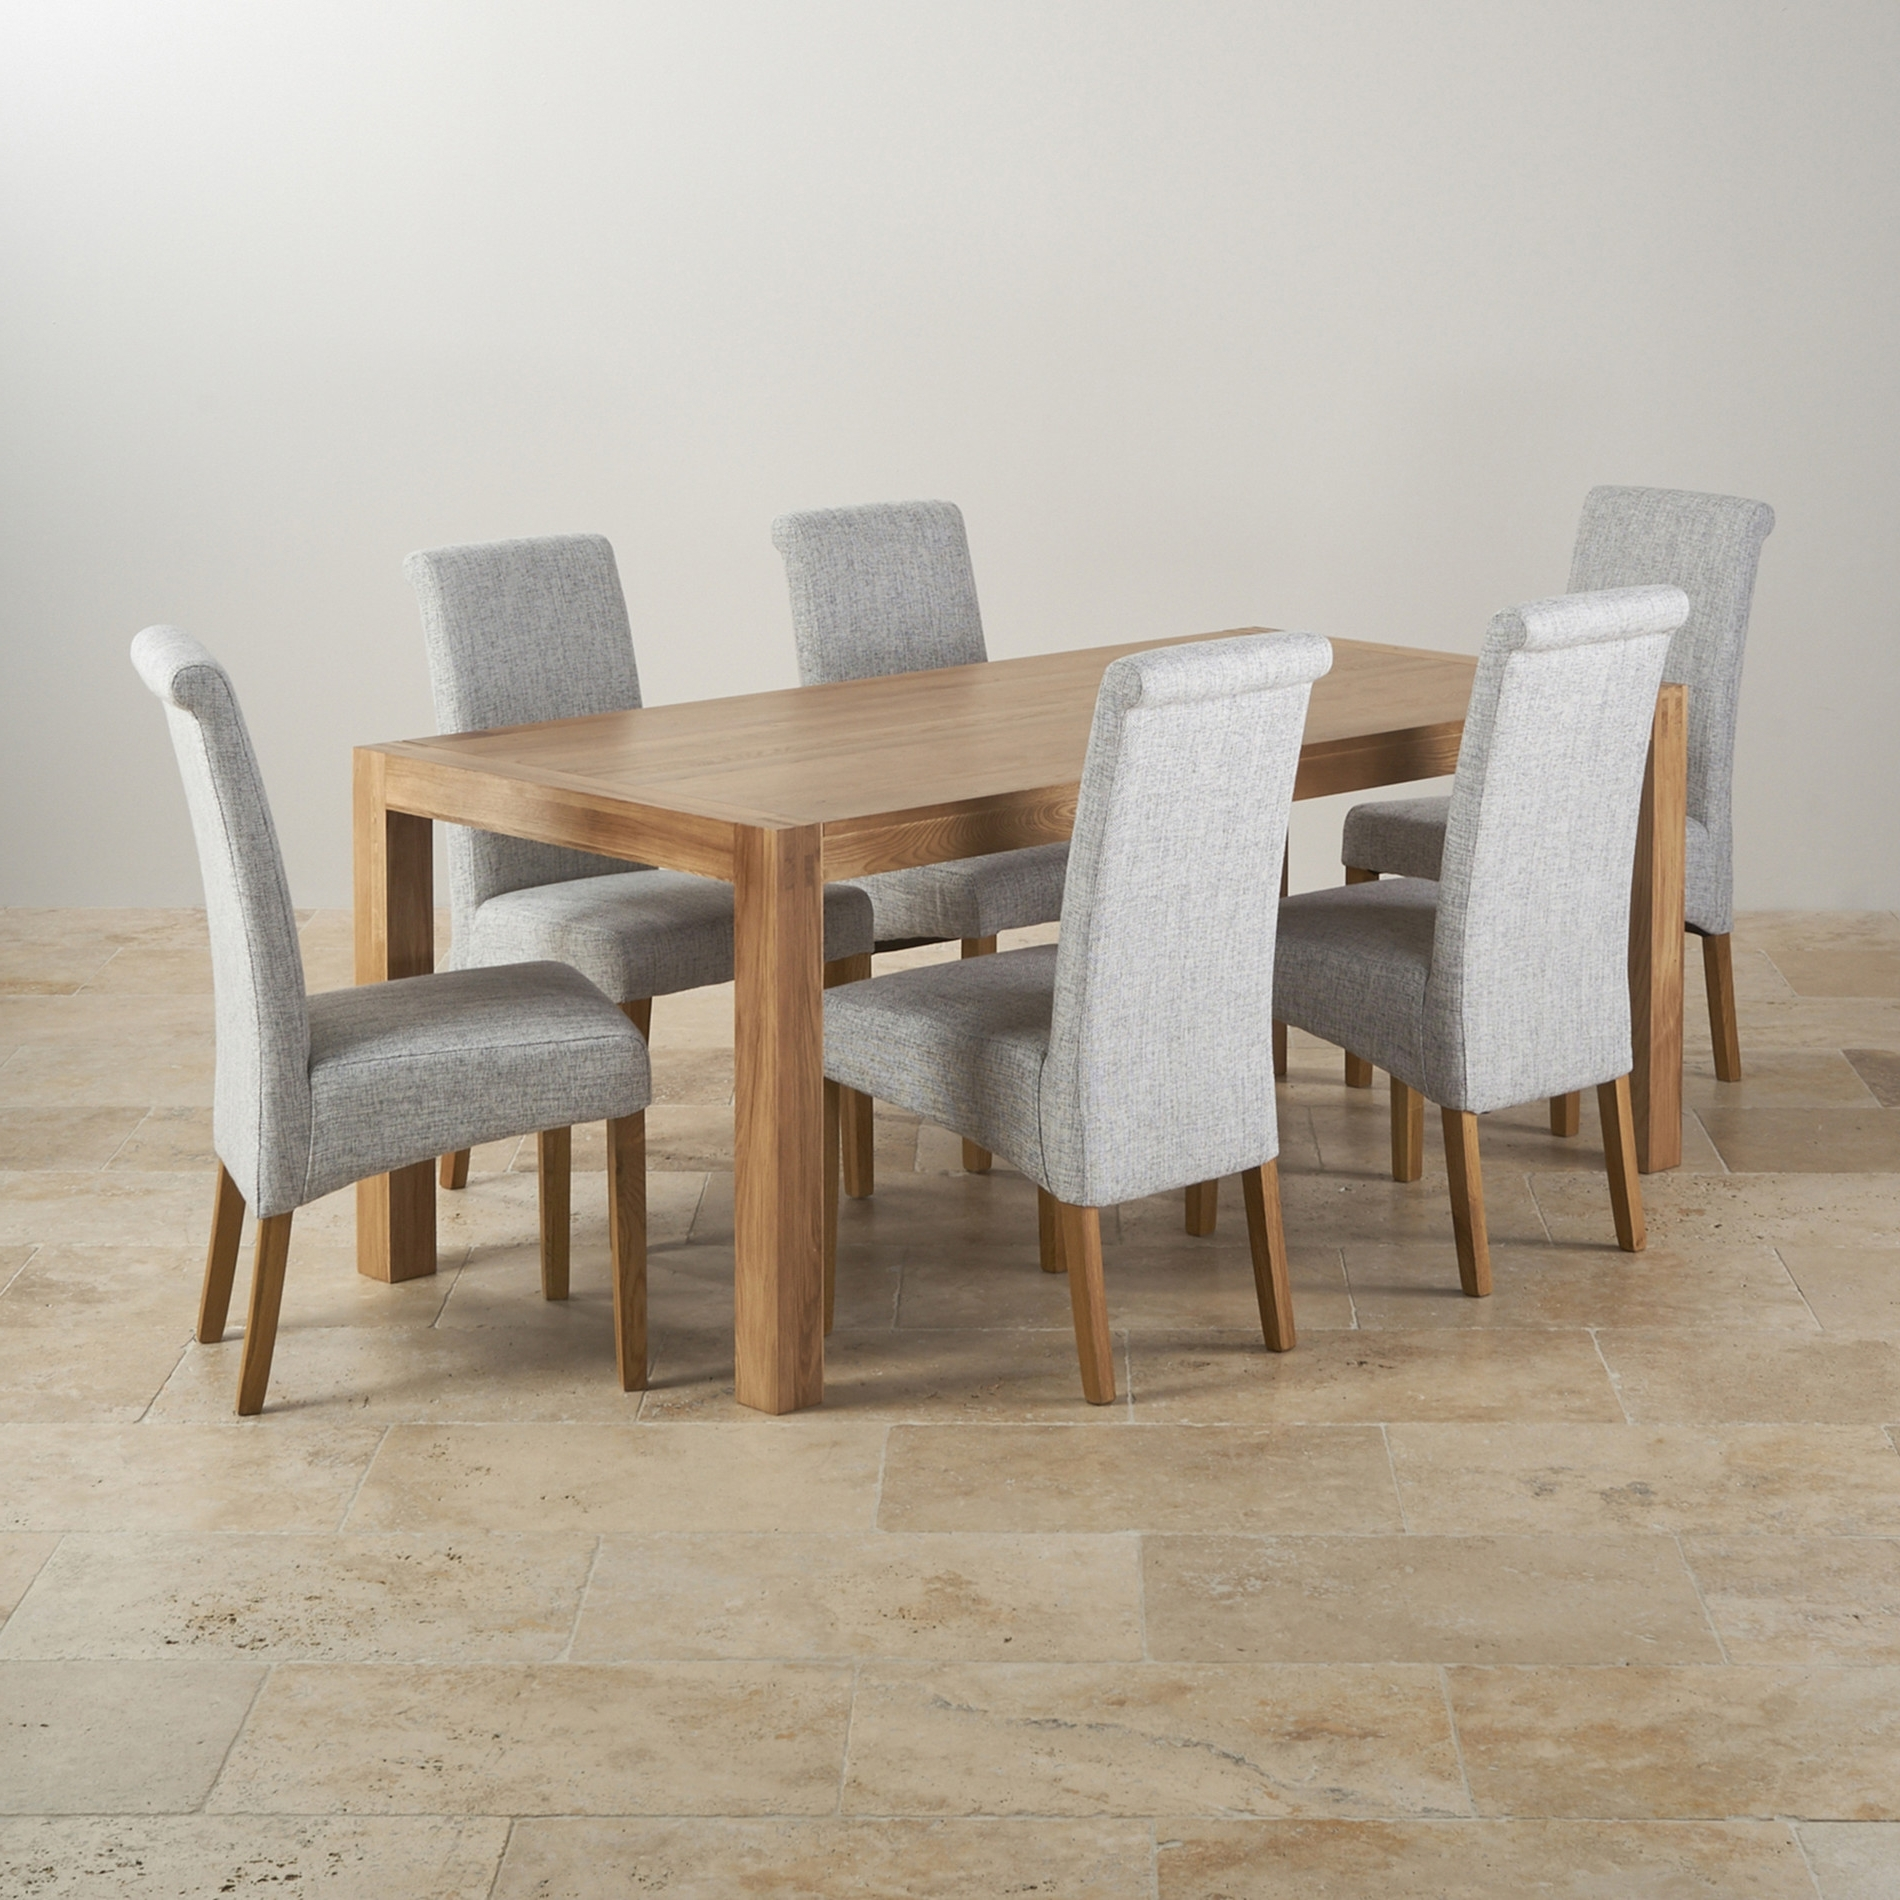 Widely Used Alto Solid Oak 6Ft Dining Table With 6 Grey Fabric Chairs Ghost In Oak Dining Tables And Fabric Chairs (View 2 of 25)